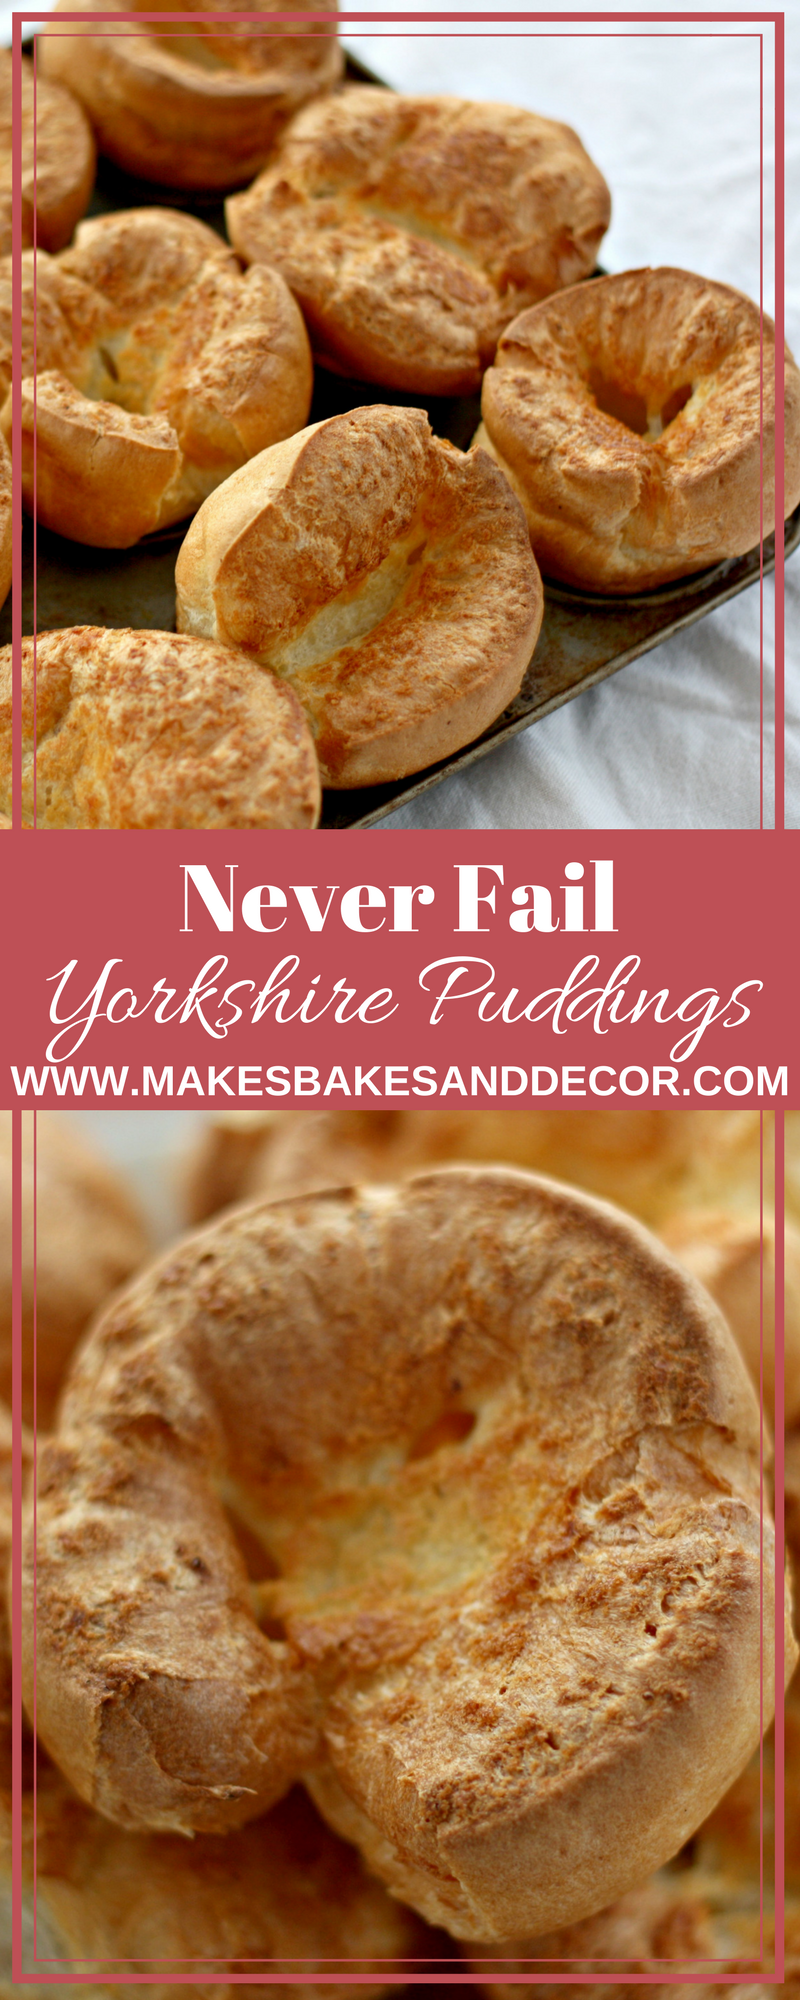 never fail yorkshire puddings